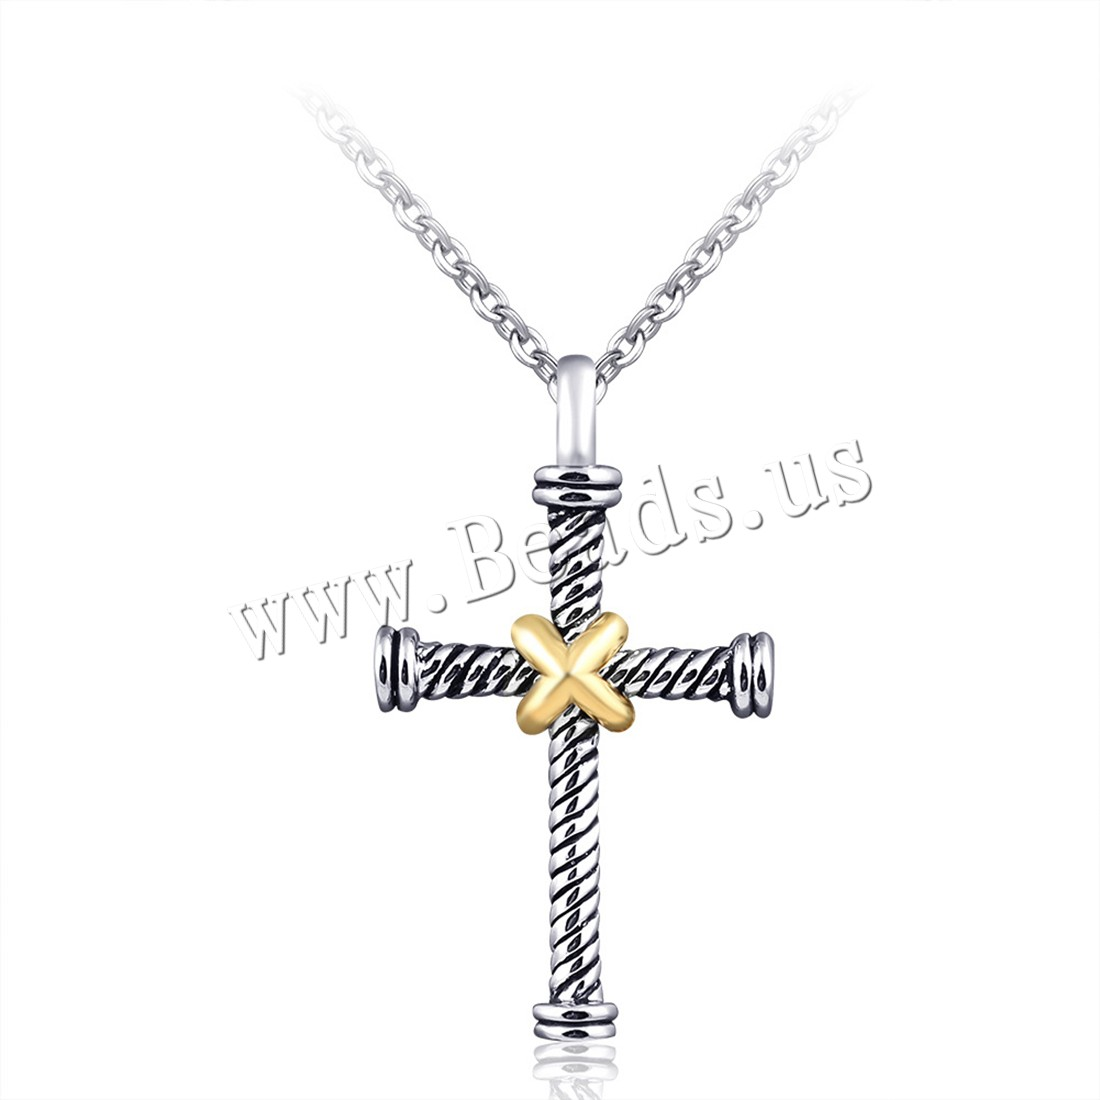 Buy Zinc Alloy Jewelry Necklace 2inch extender chain Cross plated oval chain & woman & enamel nickel lead & cadmium free 25x43.5mm Sold Per Approx 17.7 Inch Strand